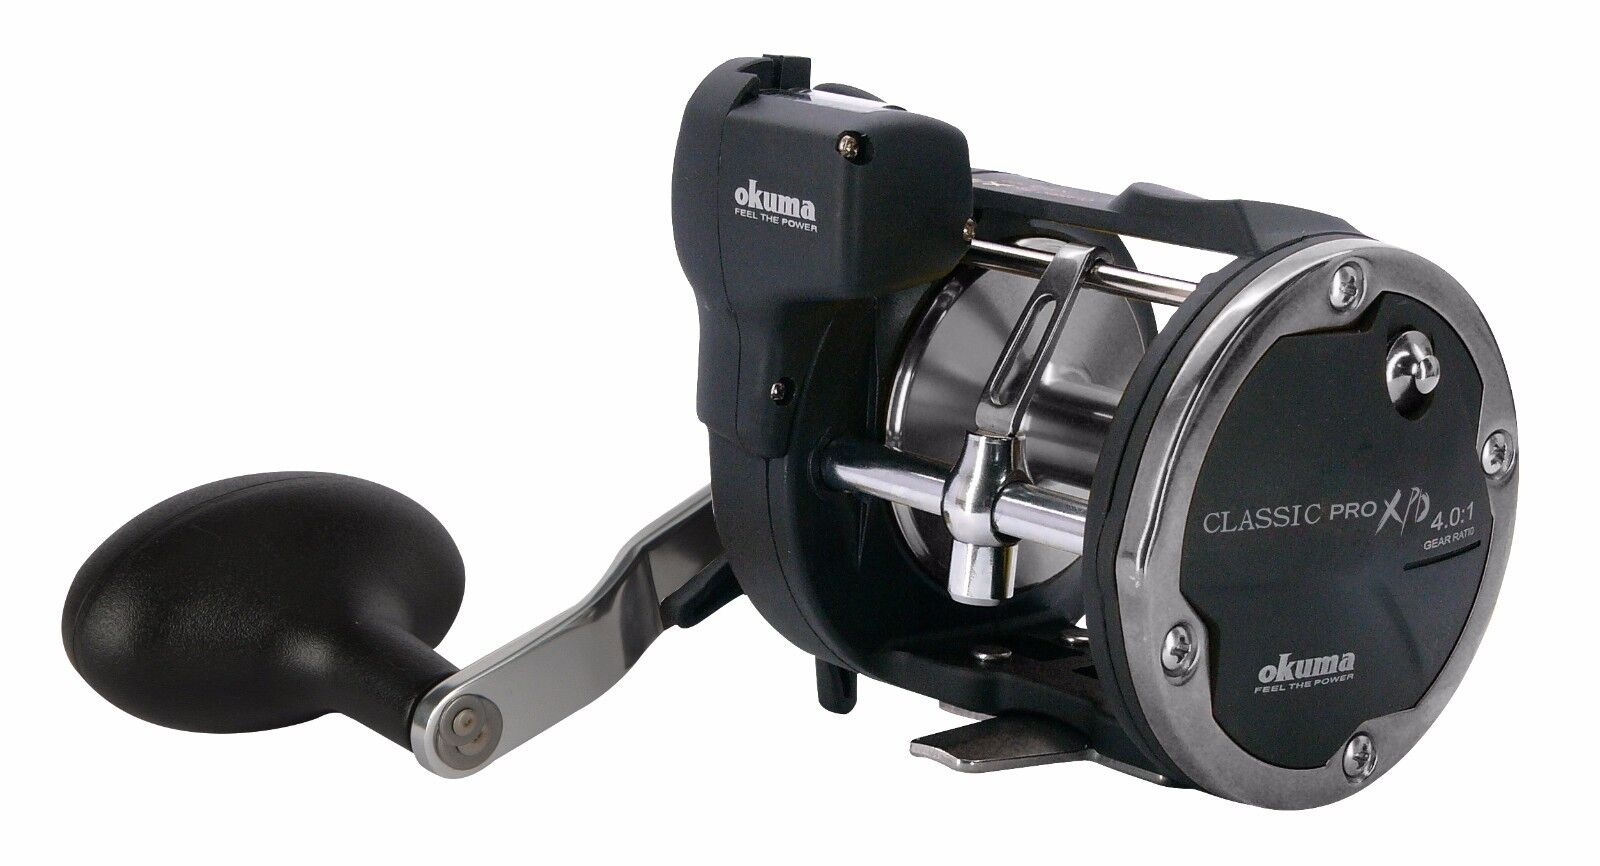 OKUMA CLASSIC PRO XPD-20DLXa LEFT HAND MULTIPLIER REEL COUNTER LEVEL WIND LINE COUNTER REEL fd626a